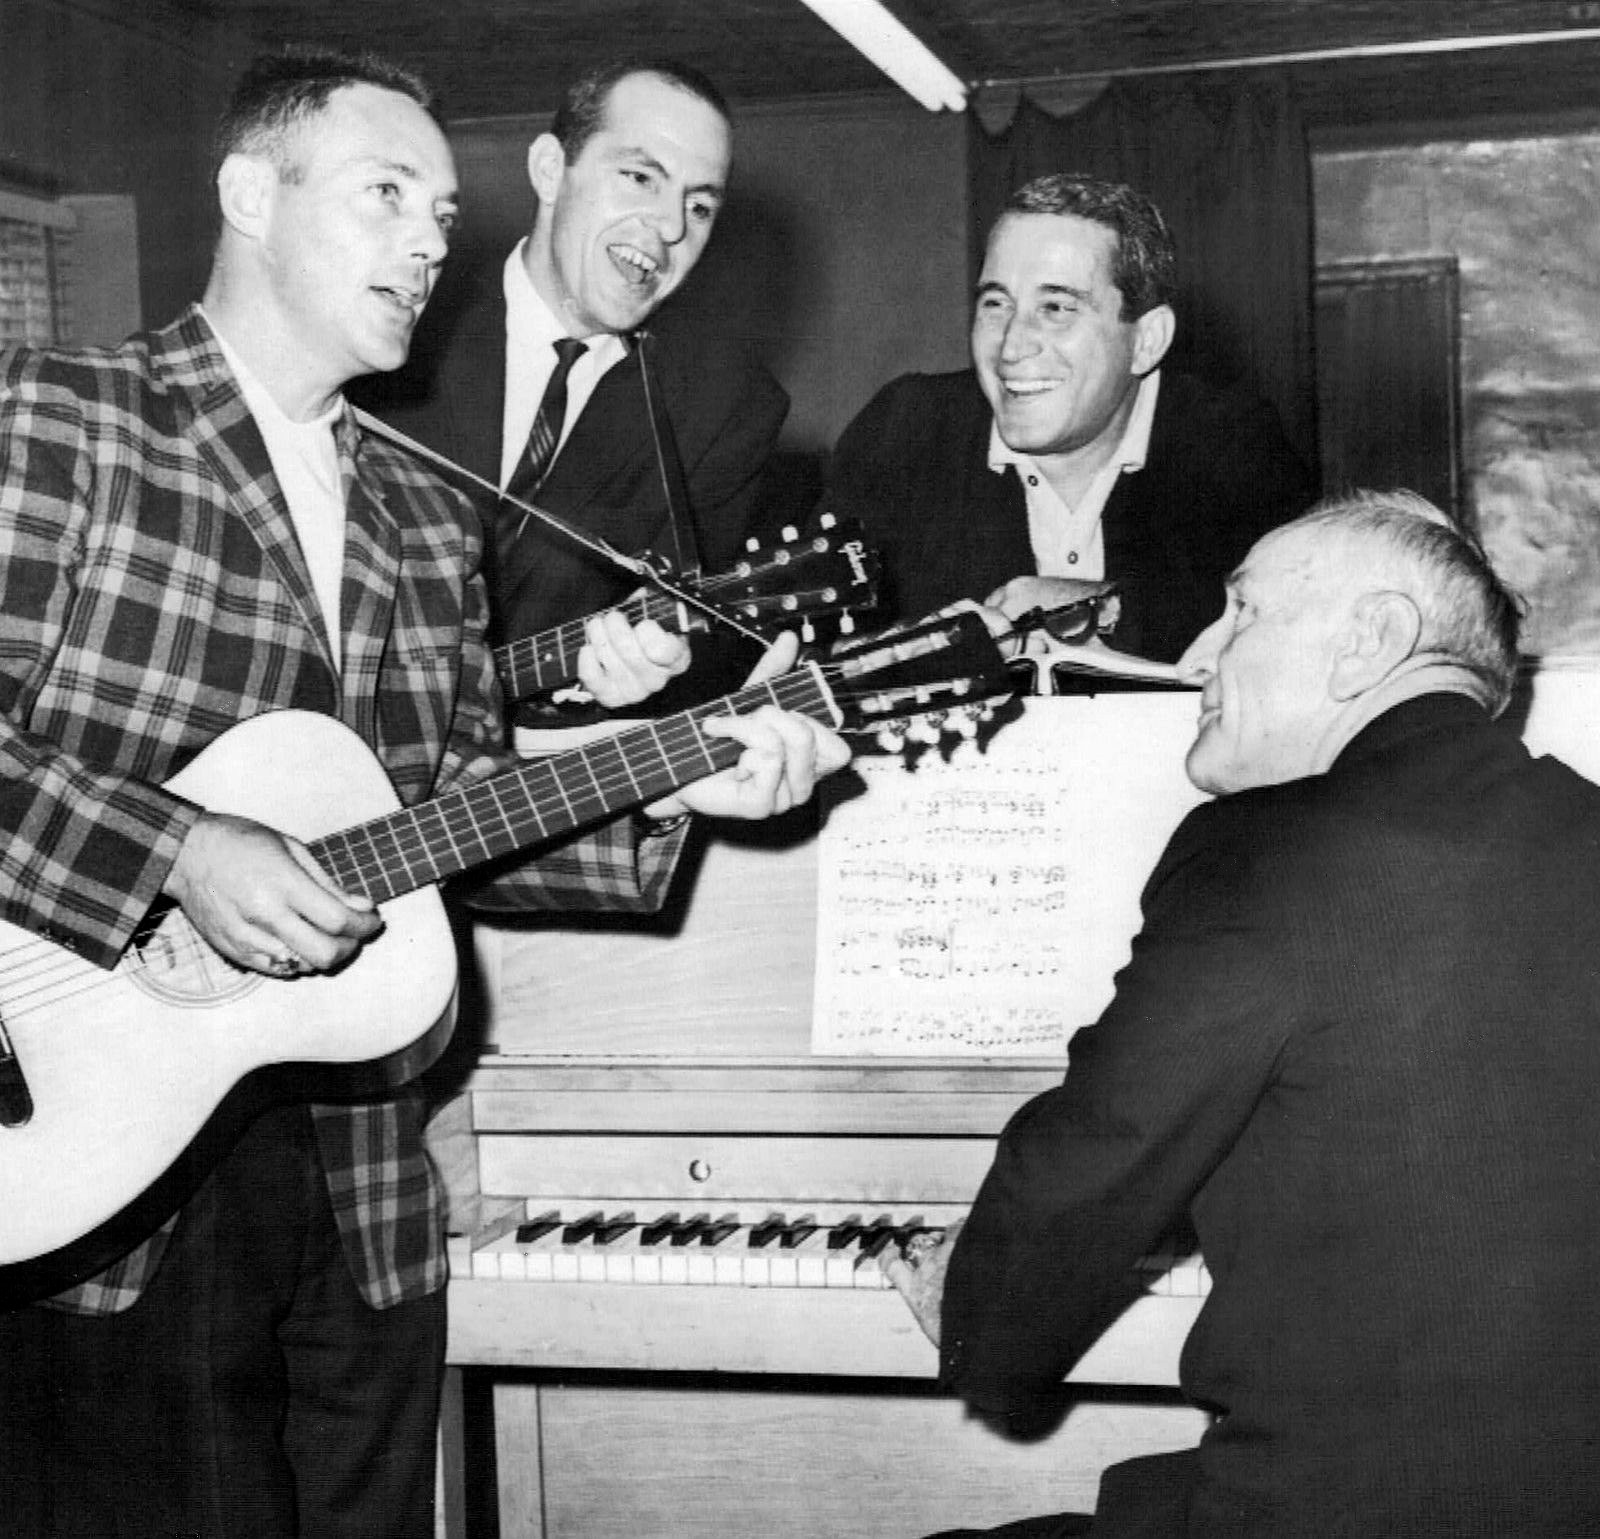 elroy face and hal smith of the pittsburgh pirates with perry como and casey stengel of the new york yankees rehearsing for a kraft music hall appearance - Perry Como Christmas Show